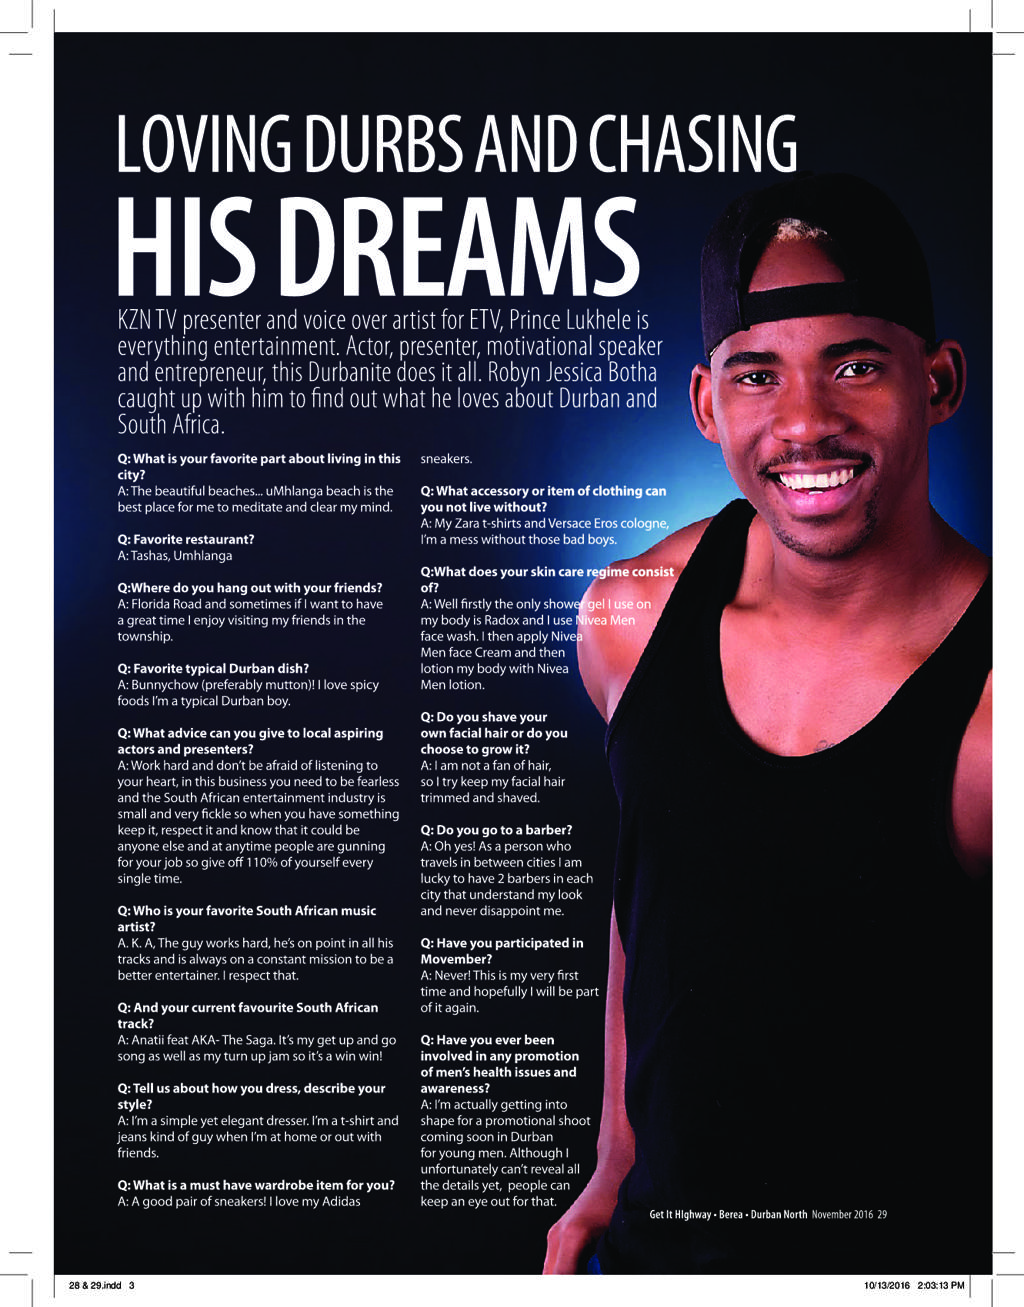 durban-get-it-magazine-november-2016-epapers-page-31